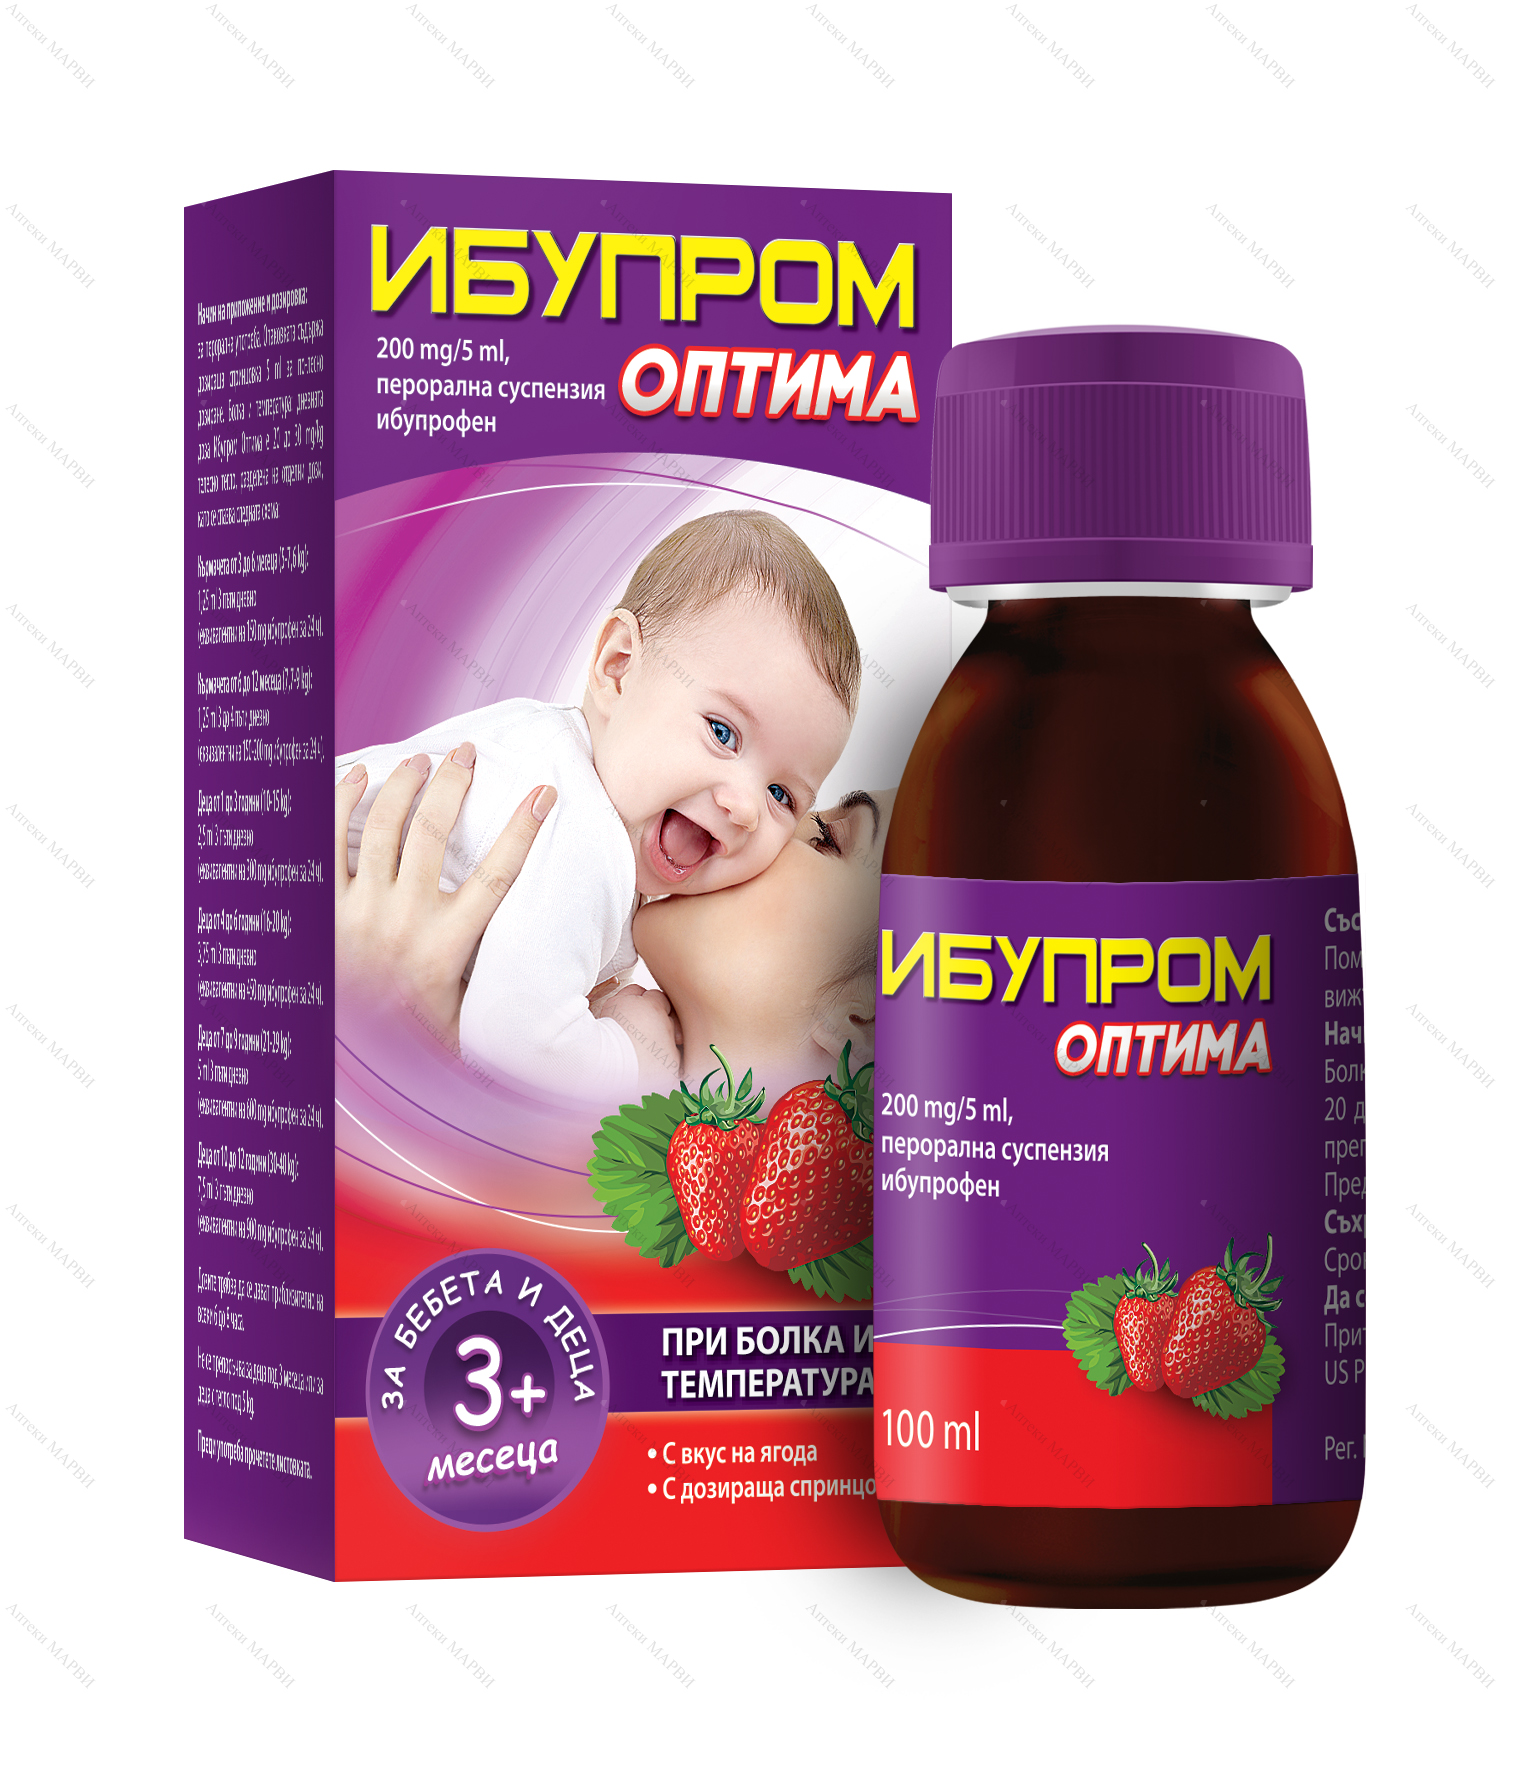 Ibuprom Optima / Ибупром Оптима, Перорална суспензия при болка и температура, 200 мг. / 5 мл., 100 мл.